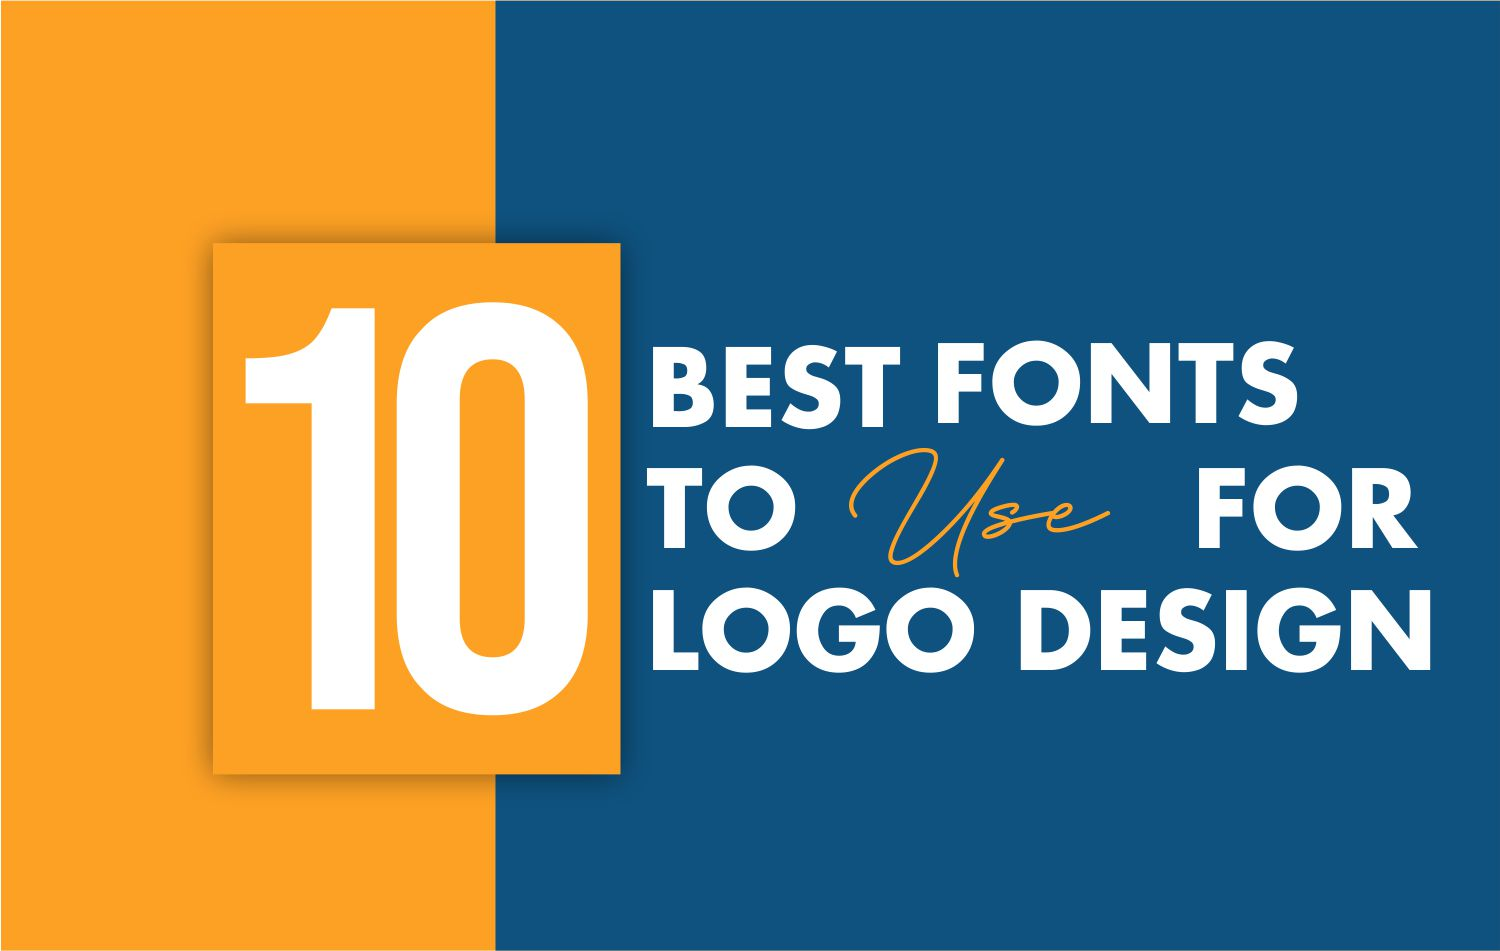 10 Best fonts to use for logo design